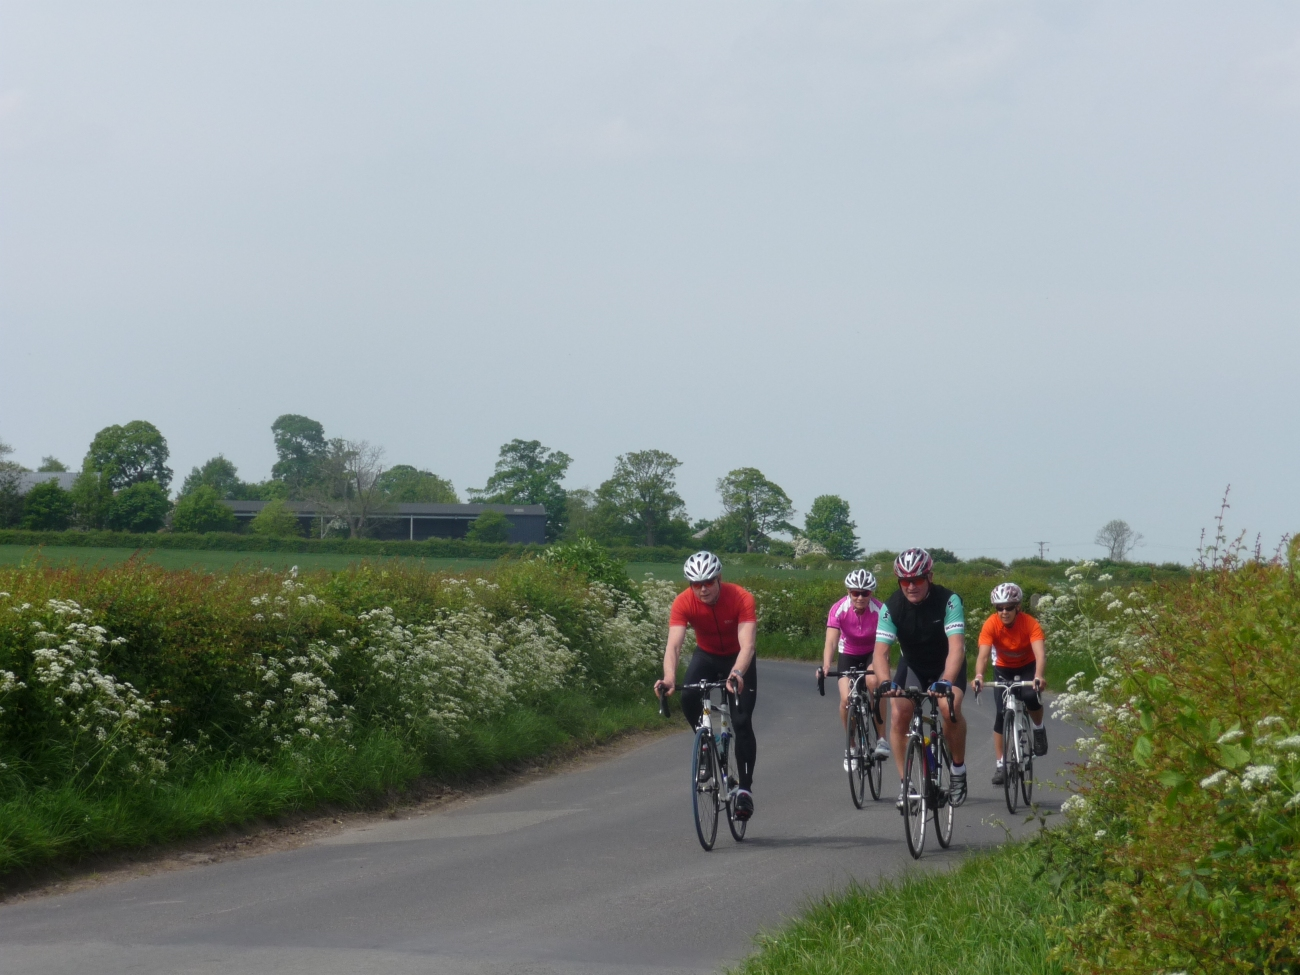 cyclists-large-group